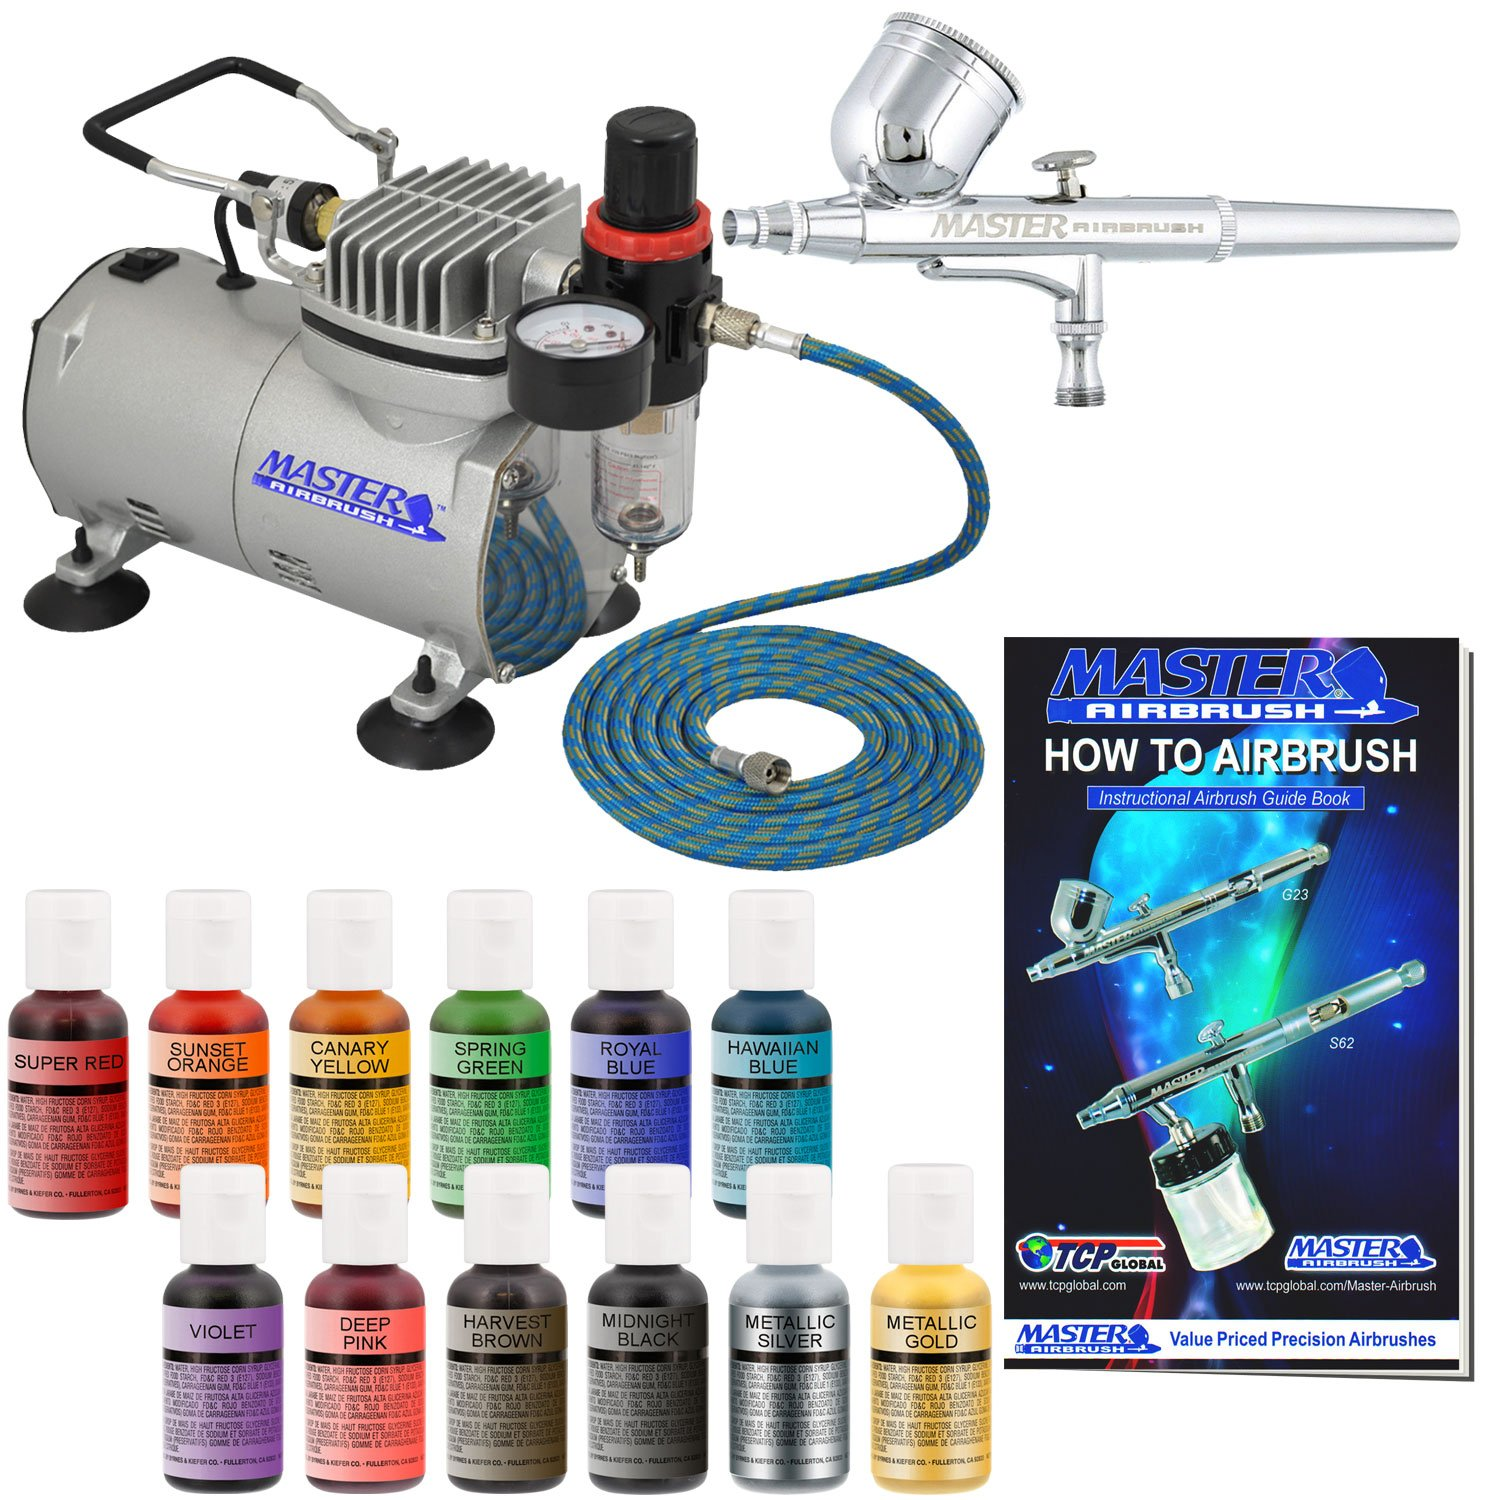 Pro Master Airbrush Cake Decorating Airbrushing System Kit with a 12 Color Chefmaster Food Coloring Set - G22 Gravity Feed Airbrush, Air Compressor, Guide Booklet - Decorate Cakes, Cupcakes, Cookies by Master Airbrush